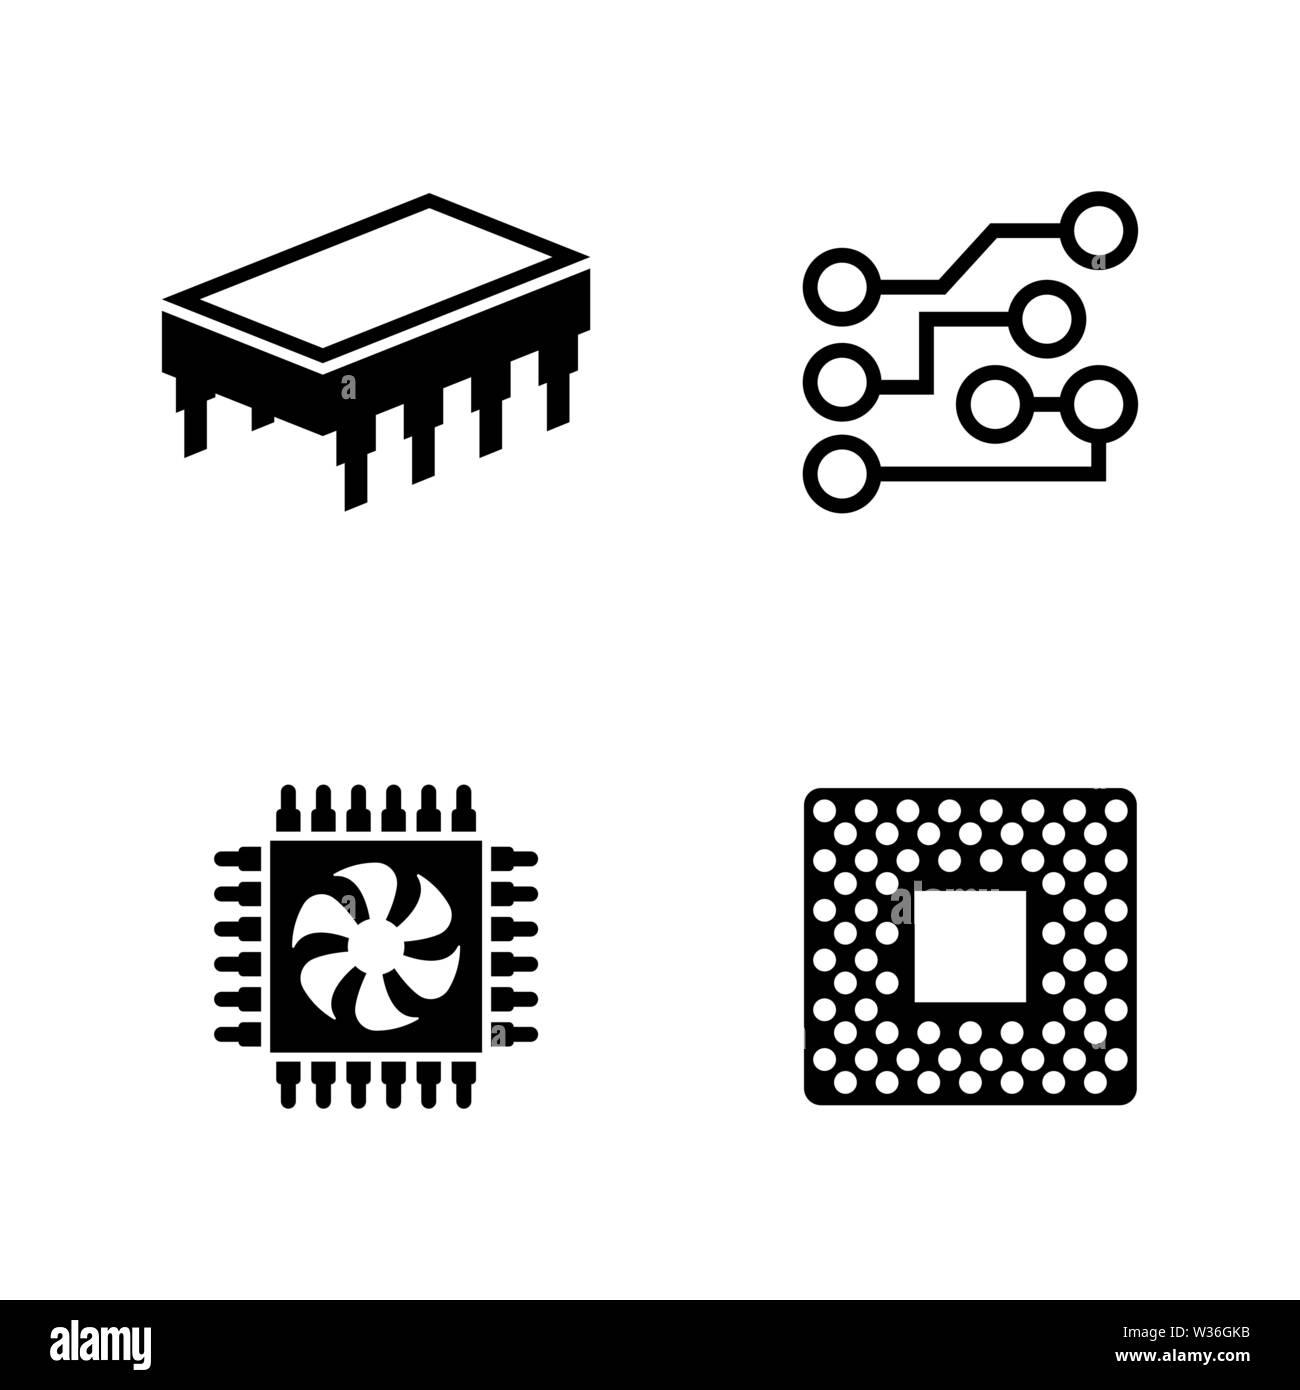 Computer Chips. Simple Related Vector Icons Set for Video, Mobile Apps, Web Sites, Print Projects and Your Design. Black Flat Illustration on White Ba - Stock Image